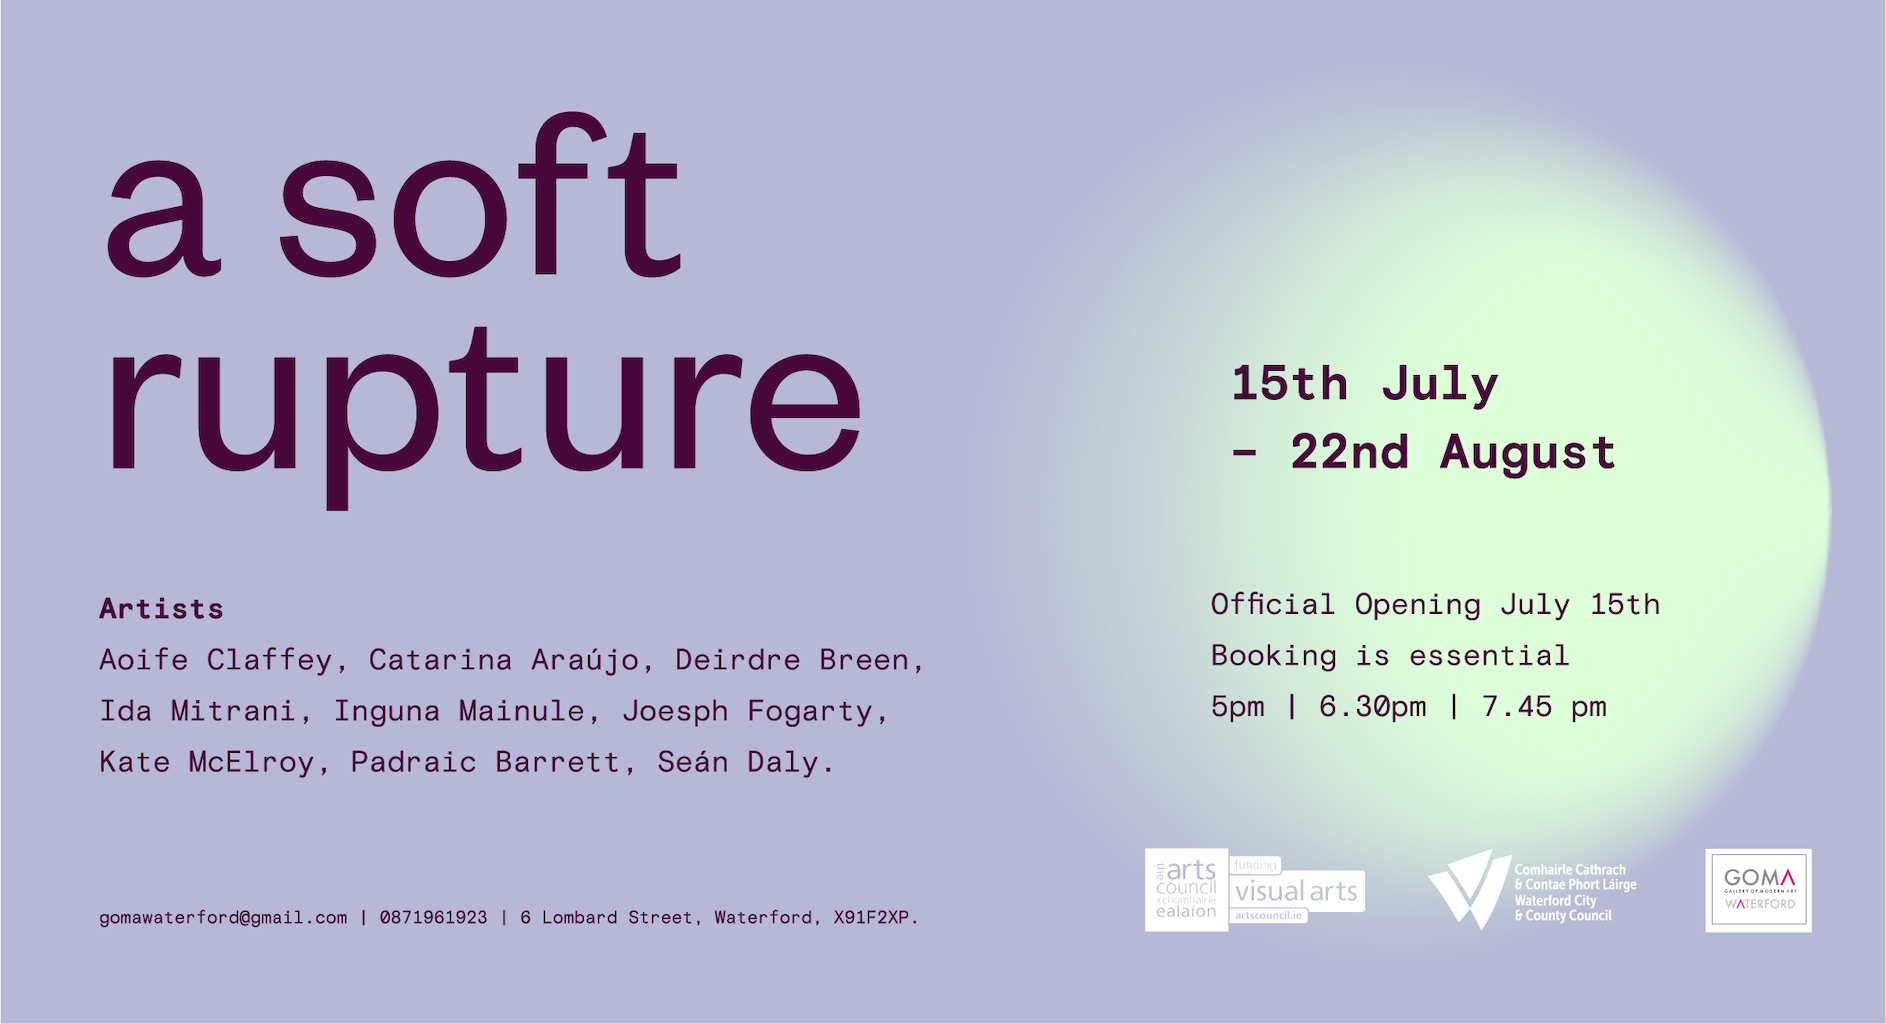 a soft rupture   Group Exhibition at GOMA Gallery, Waterford